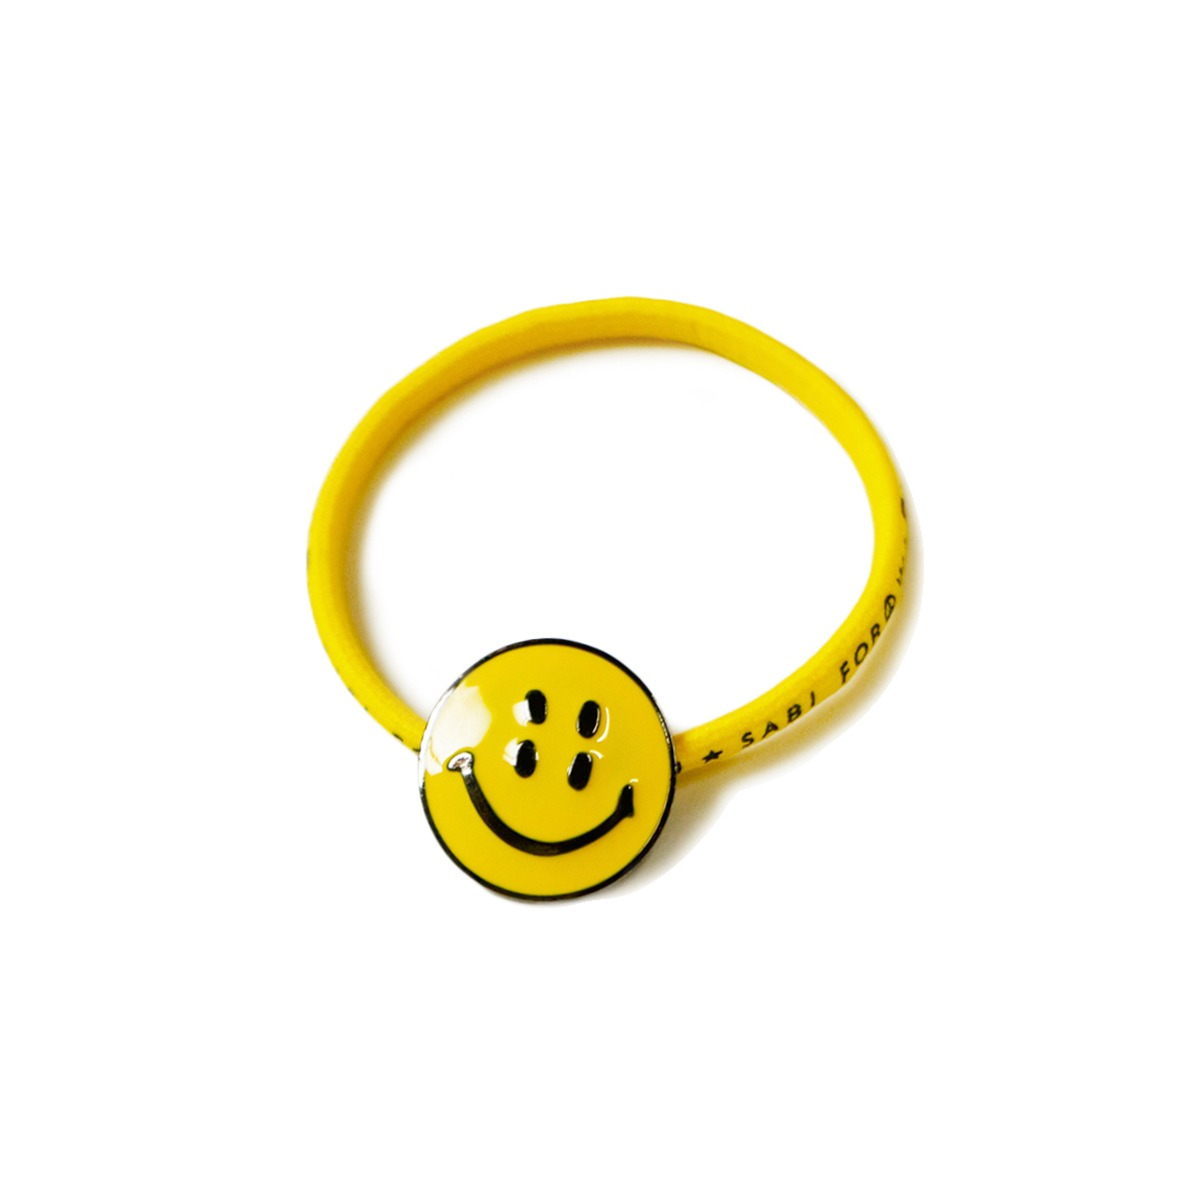 [KAPITAL] RAIN SMILE CONCHO HAIRBAND 'YELLOW'